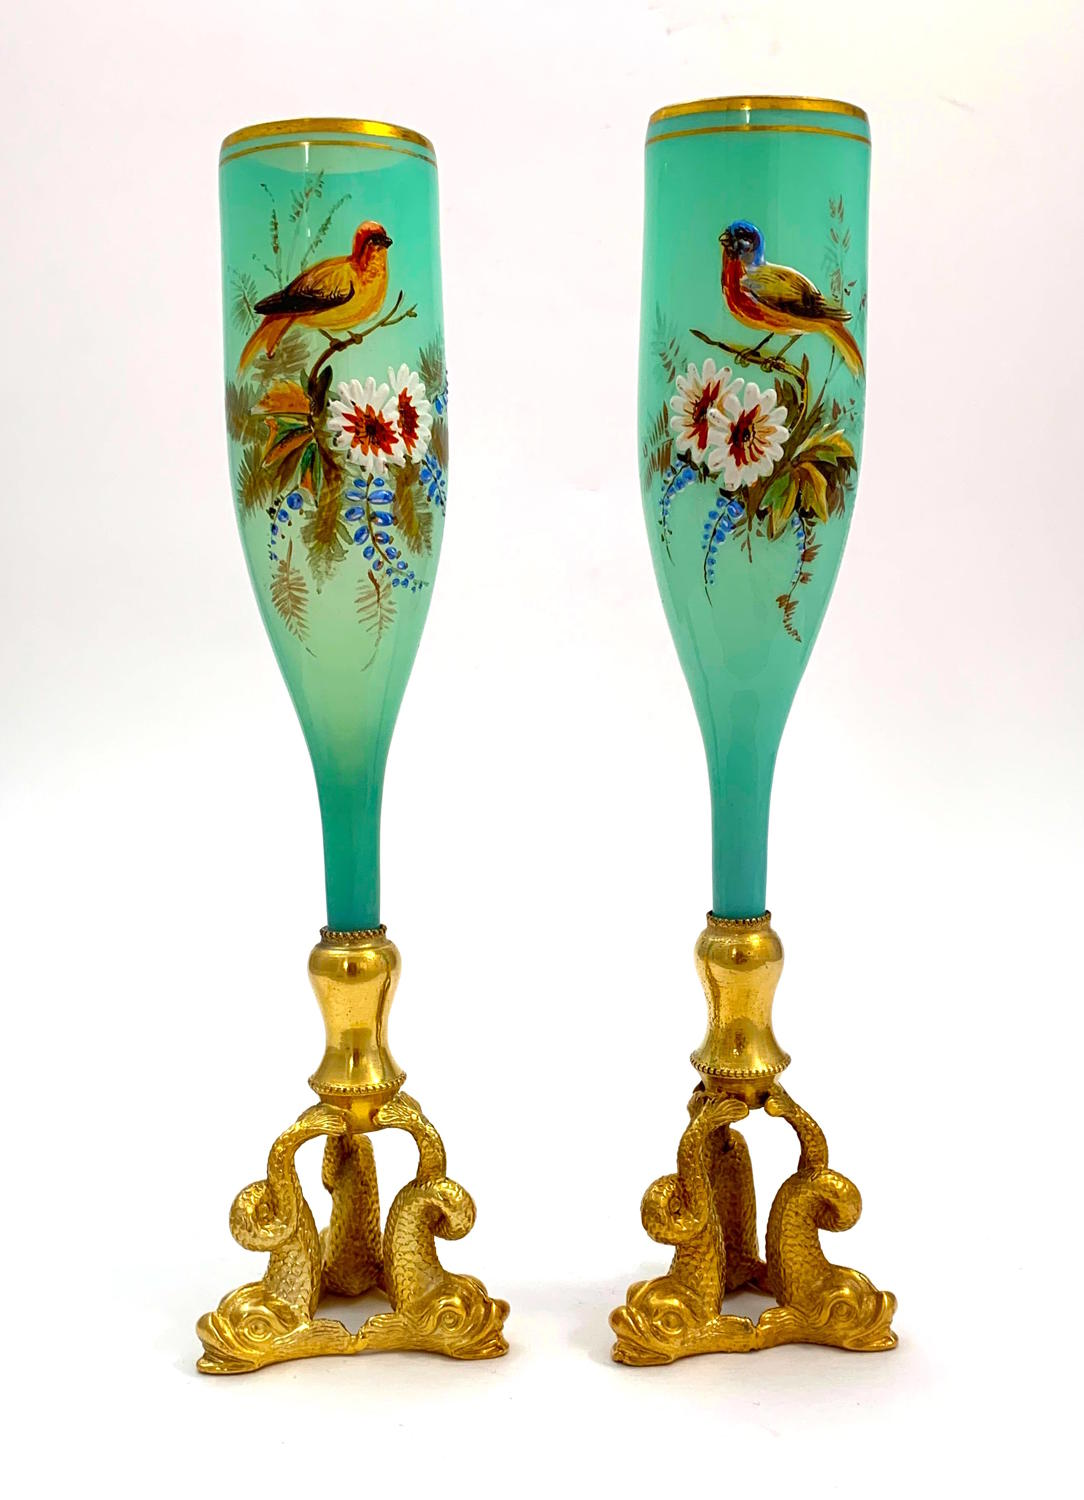 Pair of Antique French Opaline Vases Enamelled with Birds